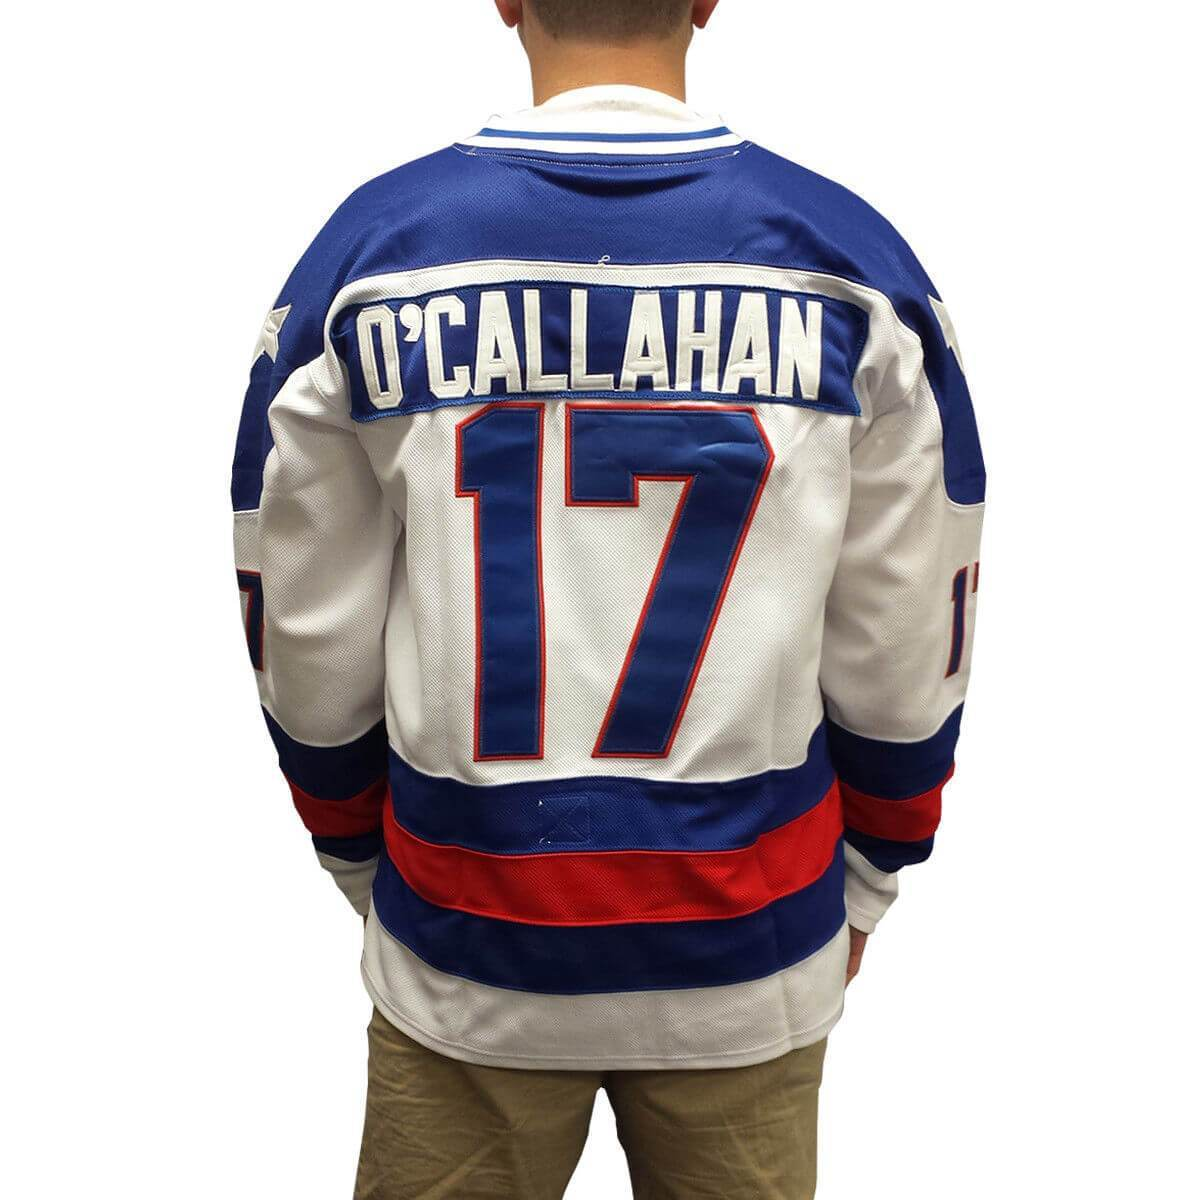 1980 Miracle On Ice Jack O'Callahan 17 USA Hockey Jersey White Blue - Jersey Champs white blue_gallery